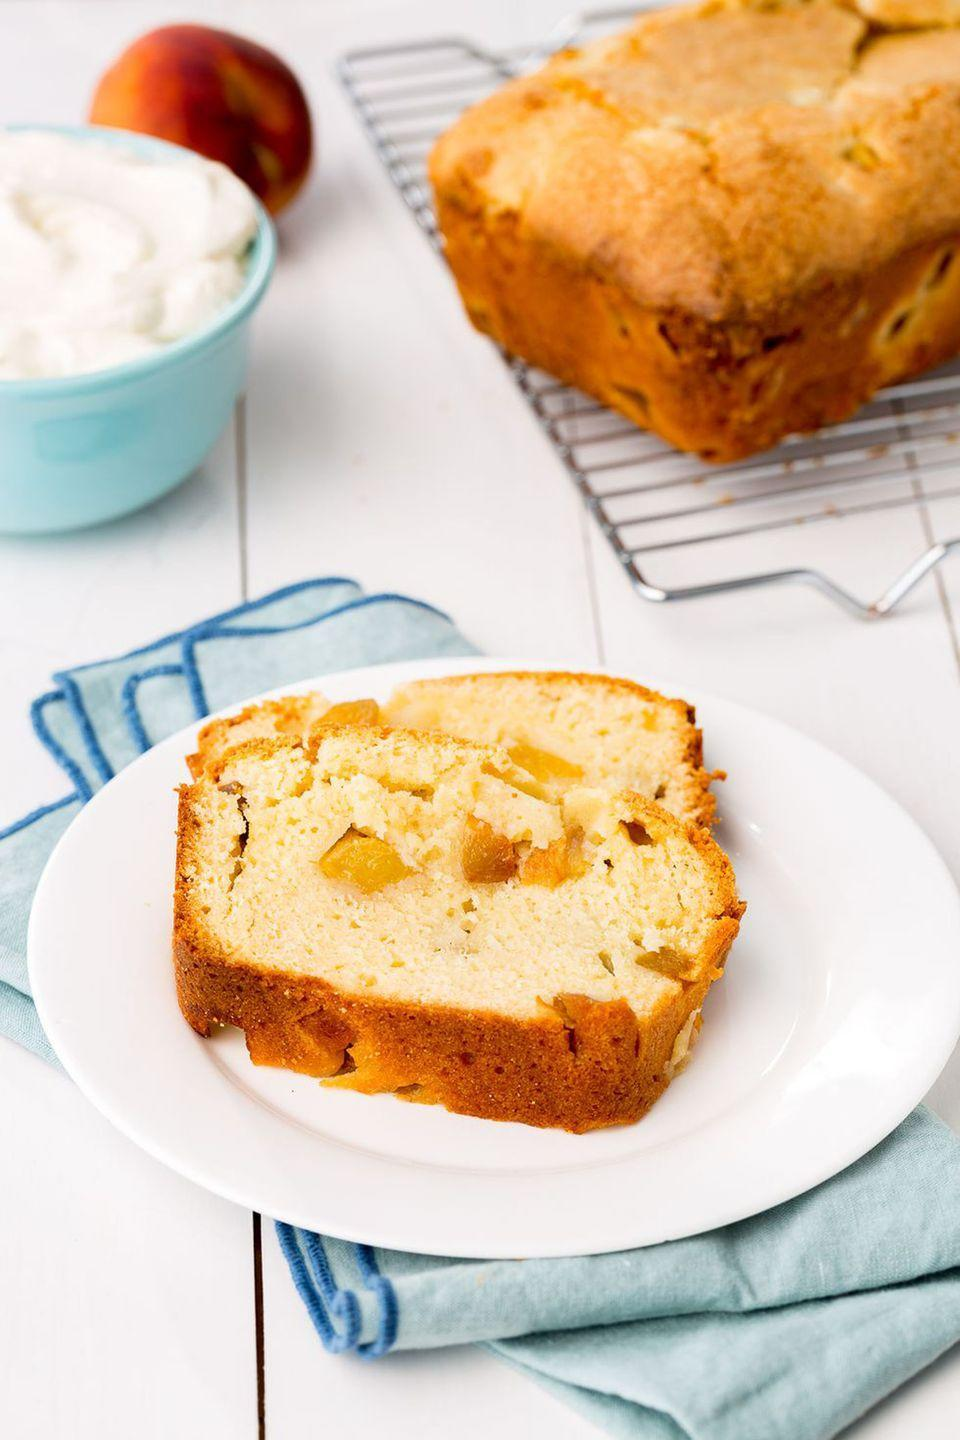 """<p>Prove that your mom's sweeter than peaches (and cream) with this delicious pound cake.</p><p><em><a href=""""https://www.delish.com/cooking/recipe-ideas/recipes/a46949/peaches-cream-pound-cake-recipe/"""" rel=""""nofollow noopener"""" target=""""_blank"""" data-ylk=""""slk:Get the recipe from Delish »"""" class=""""link rapid-noclick-resp"""">Get the recipe from Delish »</a></em></p>"""